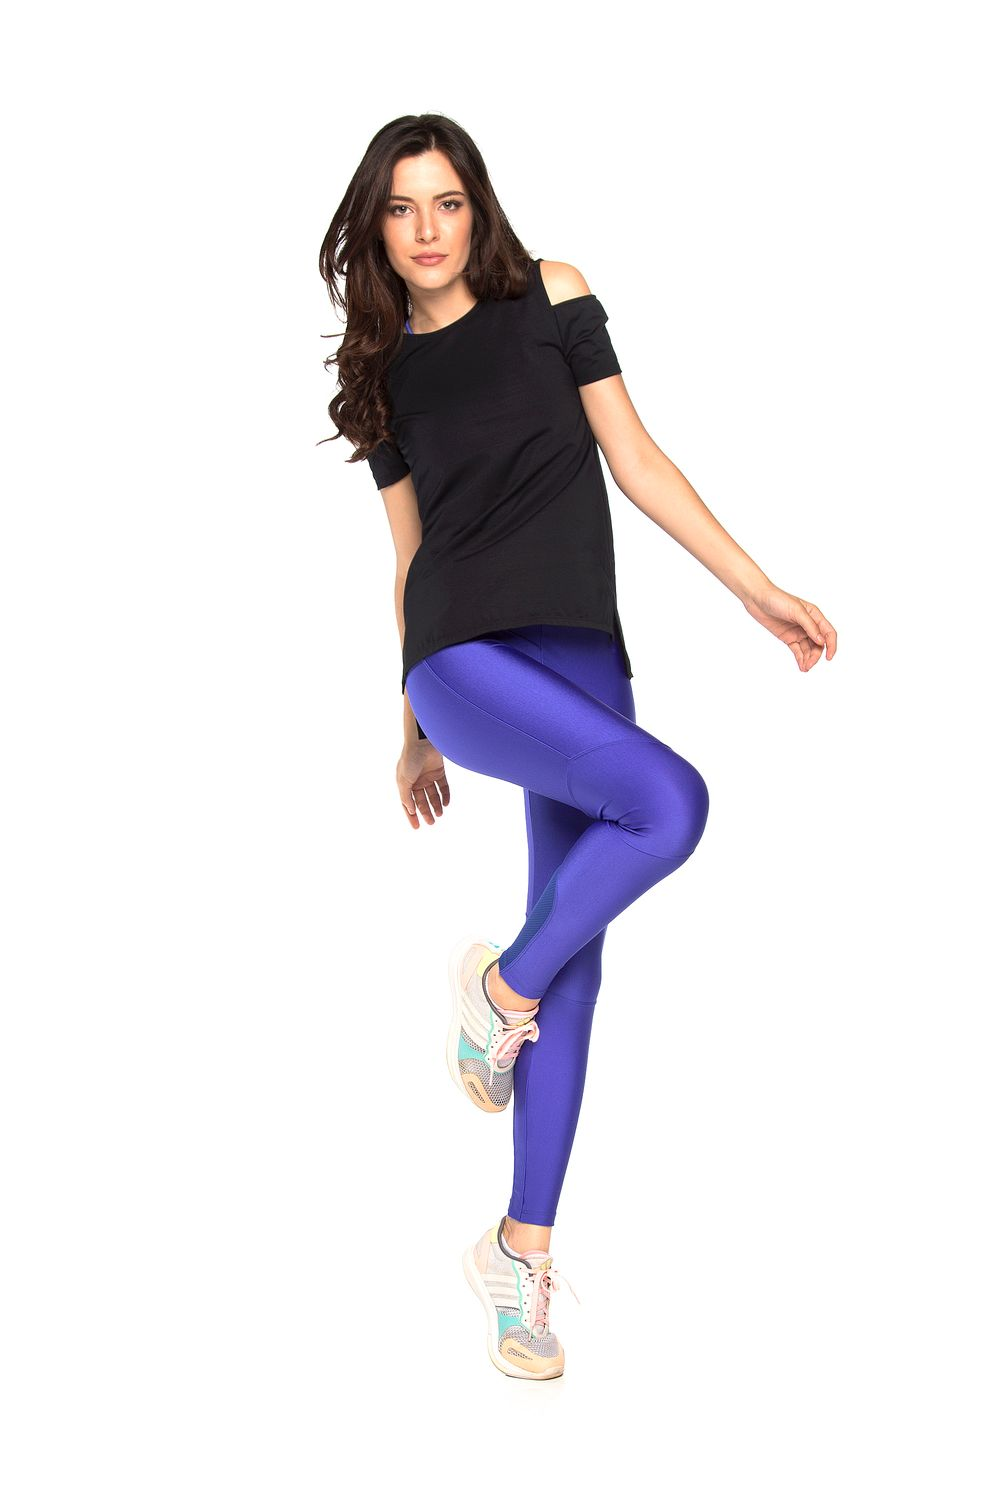 legging-fitness-alta-compressao-atlanta-tnz-3-